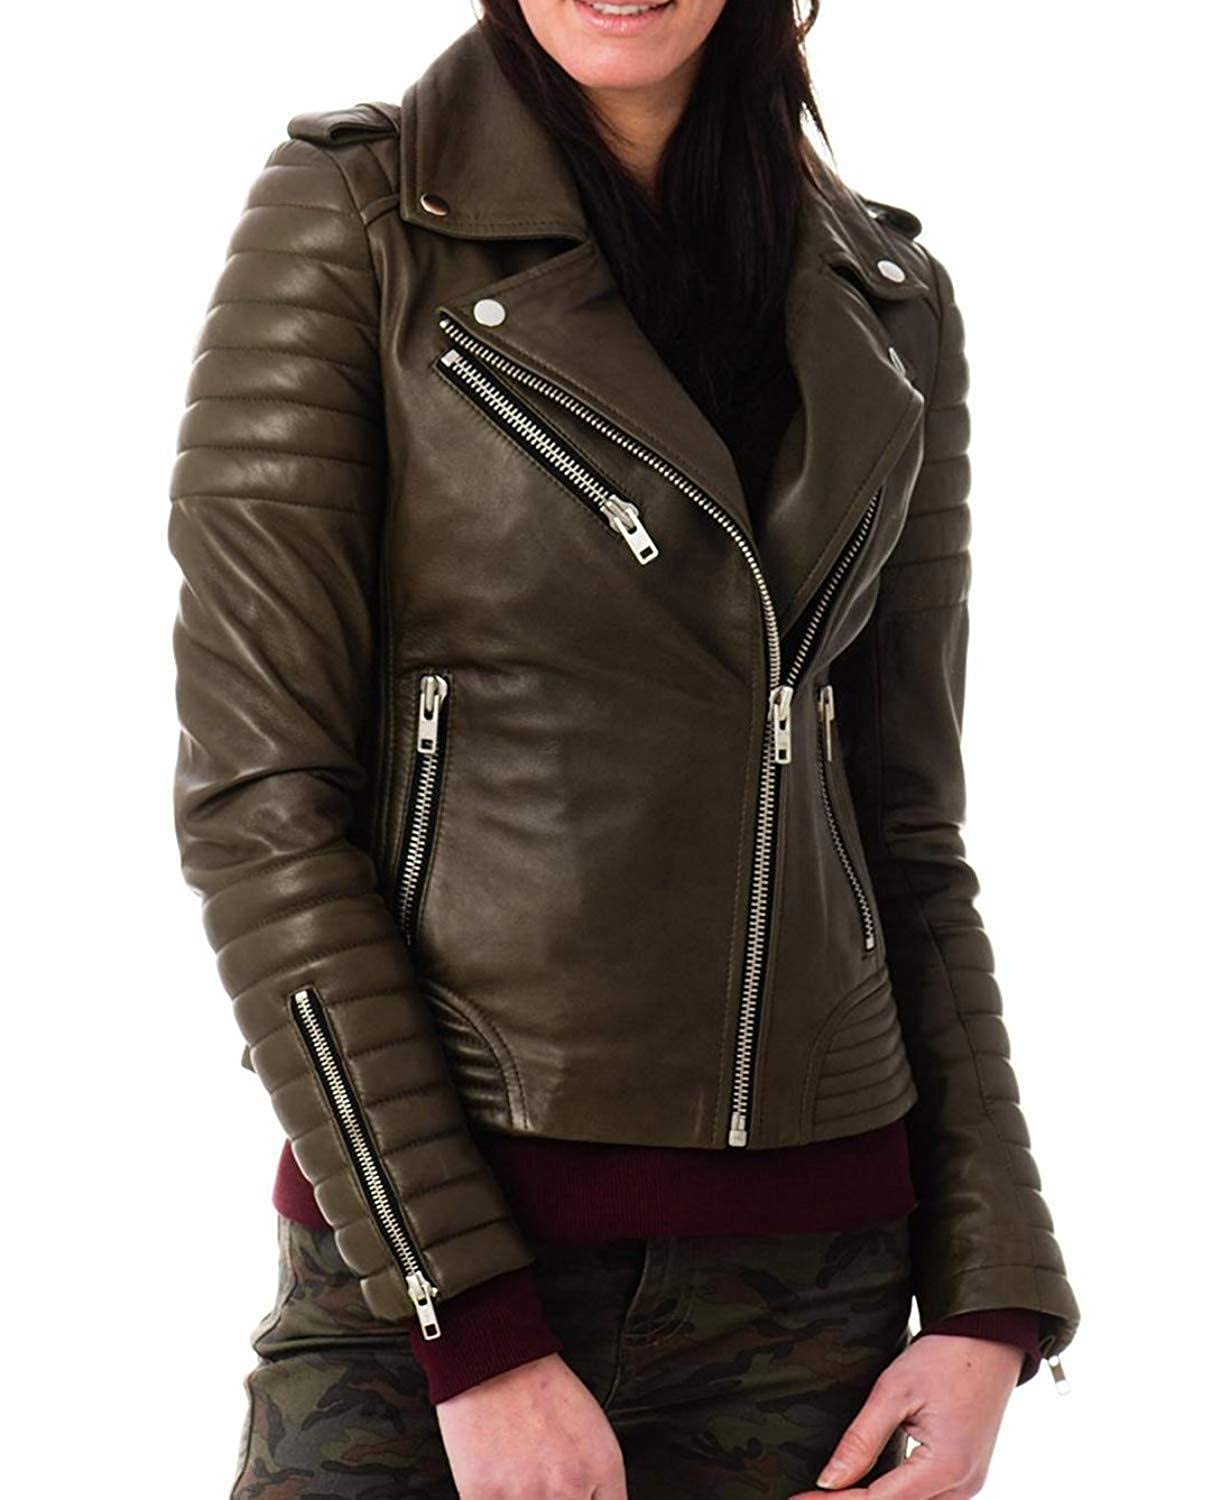 a21cb5e4e New Women's Soft Lambskin Olive Leather Bomber Biker Jacket at ...